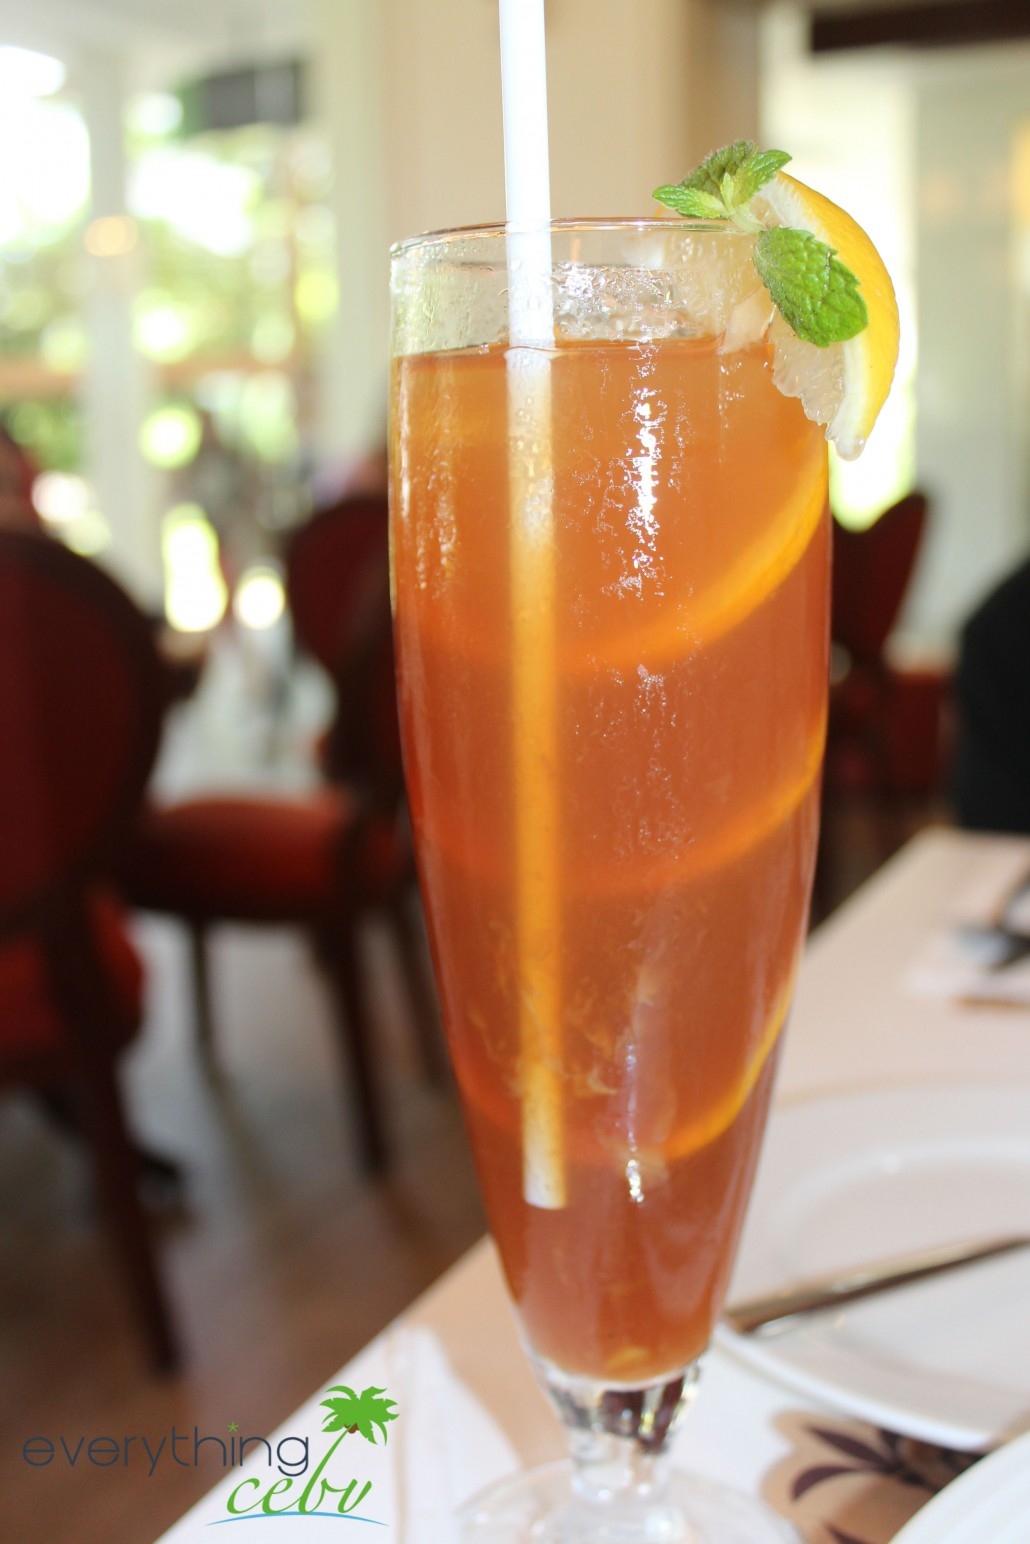 the refreshing Country Iced Tea